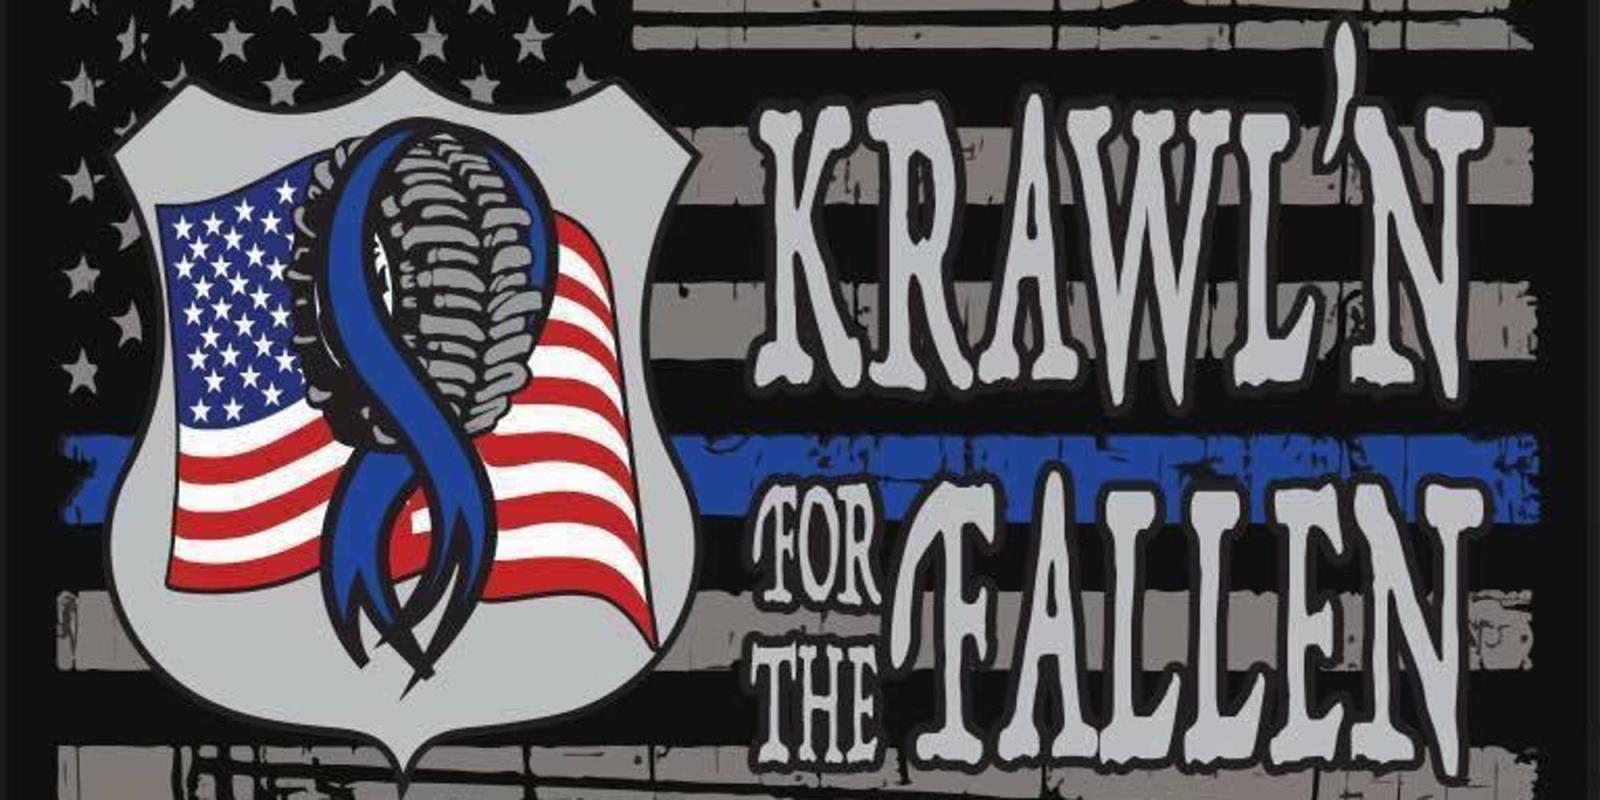 """Krawl'n For the Fallen"" over and American Flag with the blue line with Amercan flag in badge with a tire and blue ribbon"